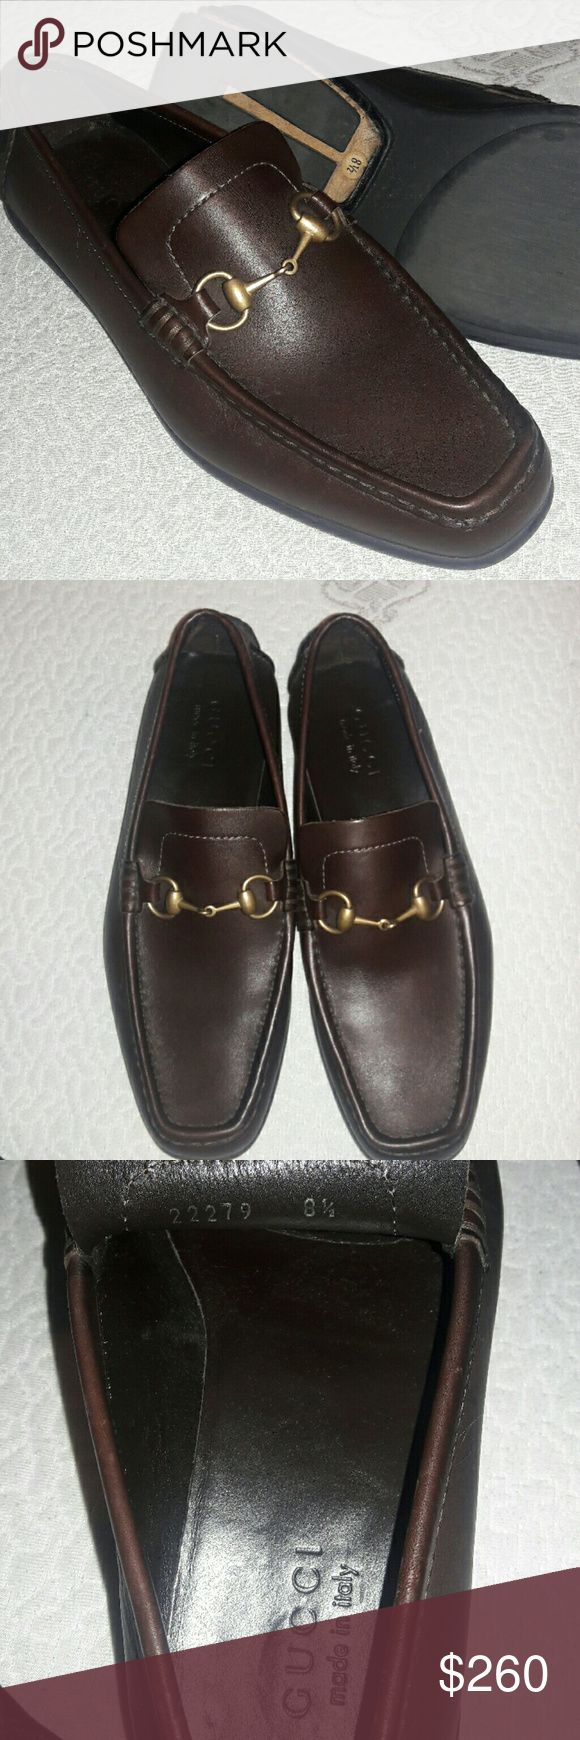 Authentic guccishoes mens made in italy 8.5us size Gucci shoes open box no used looks like new Gucci Shoes Loafers & Slip-Ons